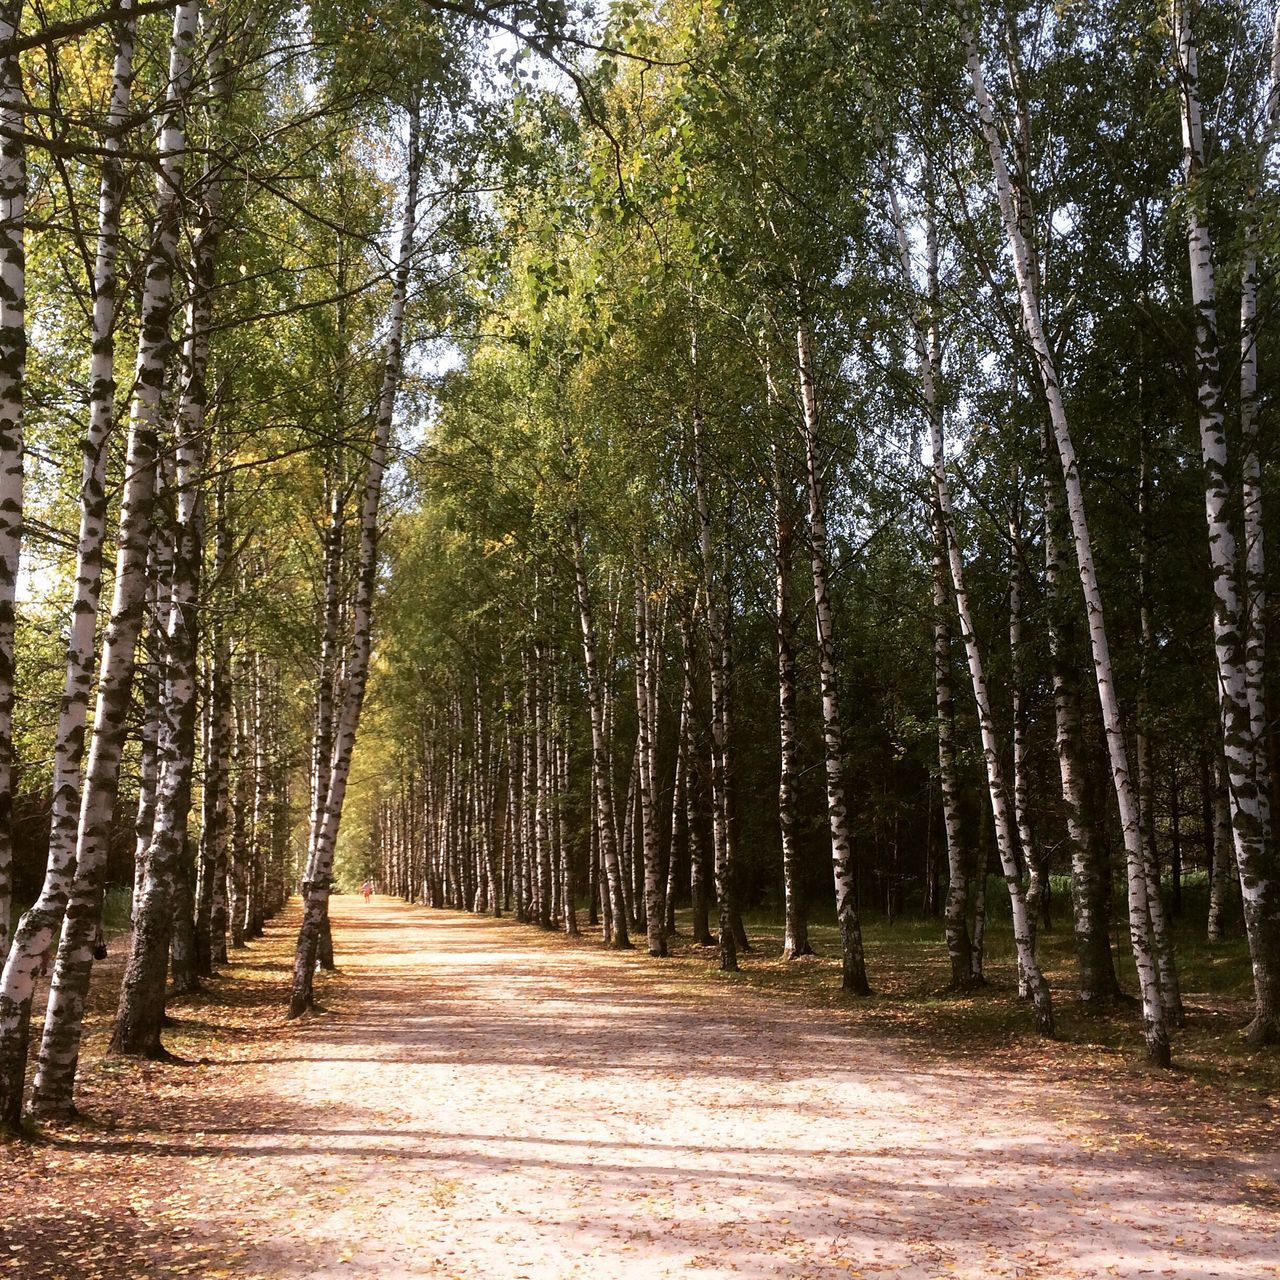 tree, forest, nature, the way forward, tranquil scene, tranquility, beauty in nature, growth, no people, outdoors, scenics, day